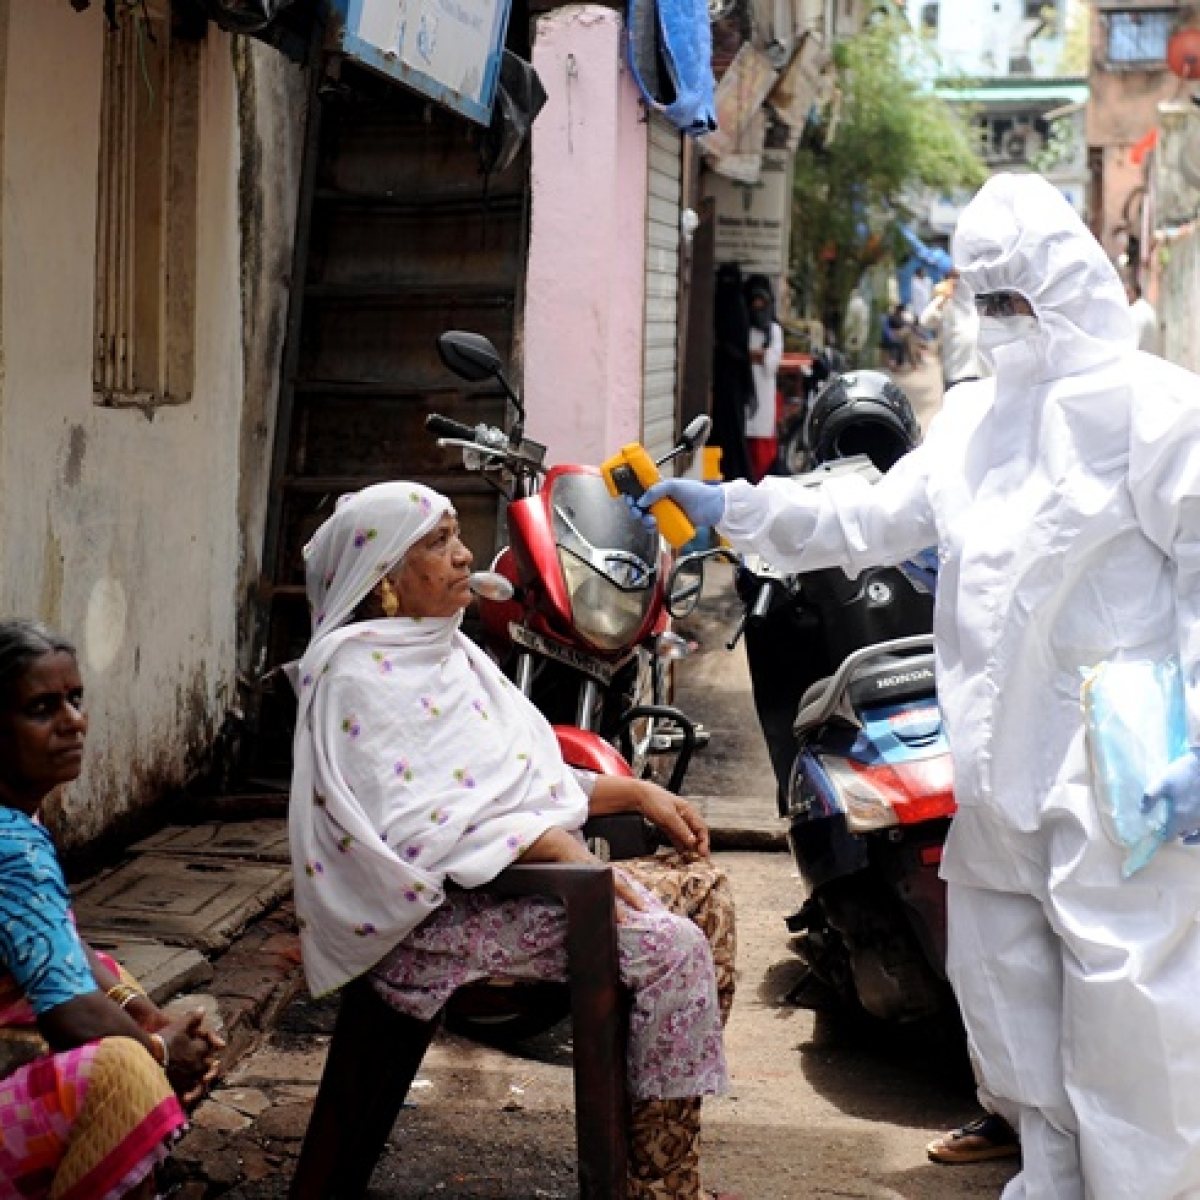 Coronavirus latest update: India records 24,879 new COVID-19 cases, total tally rises 7,67,296